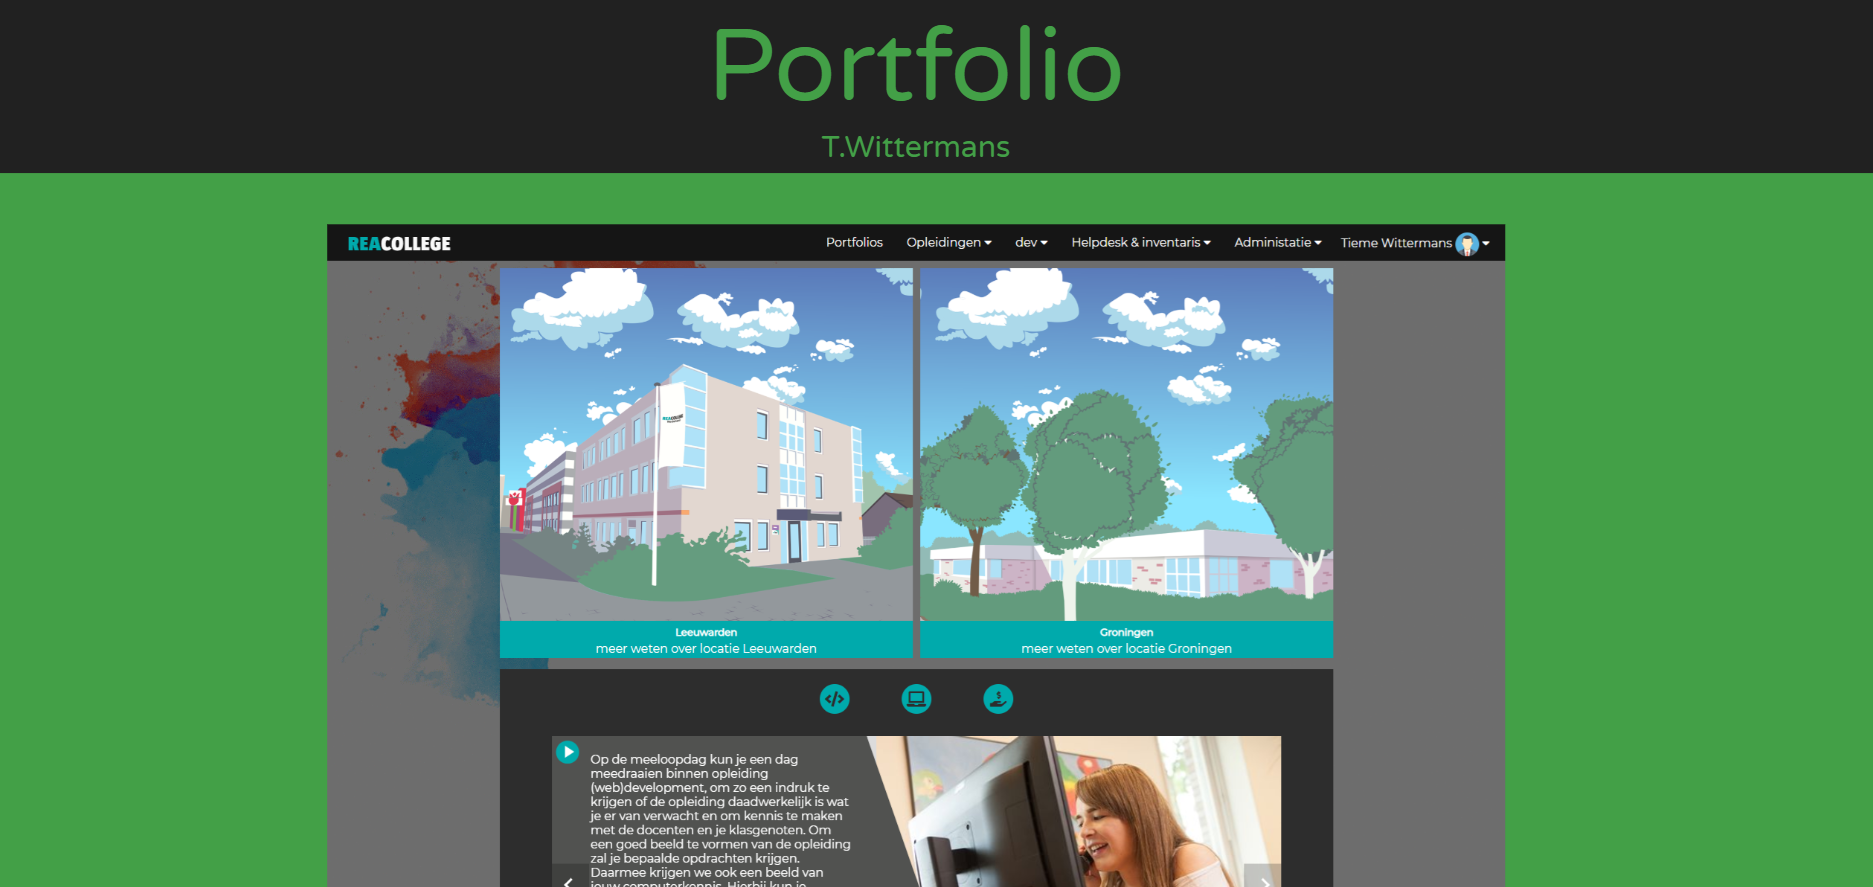 portfolio website image